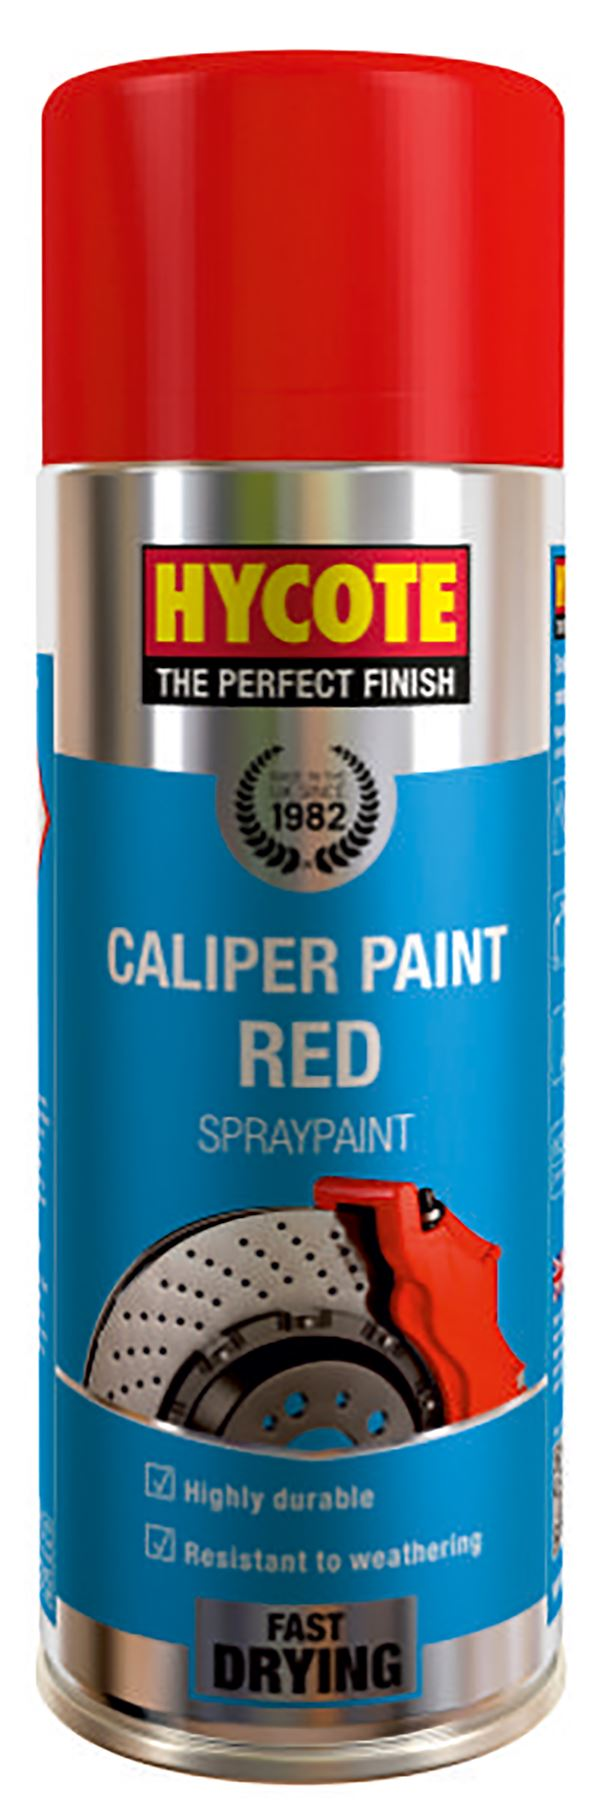 Hycote Red Caliper Paint - 400ml